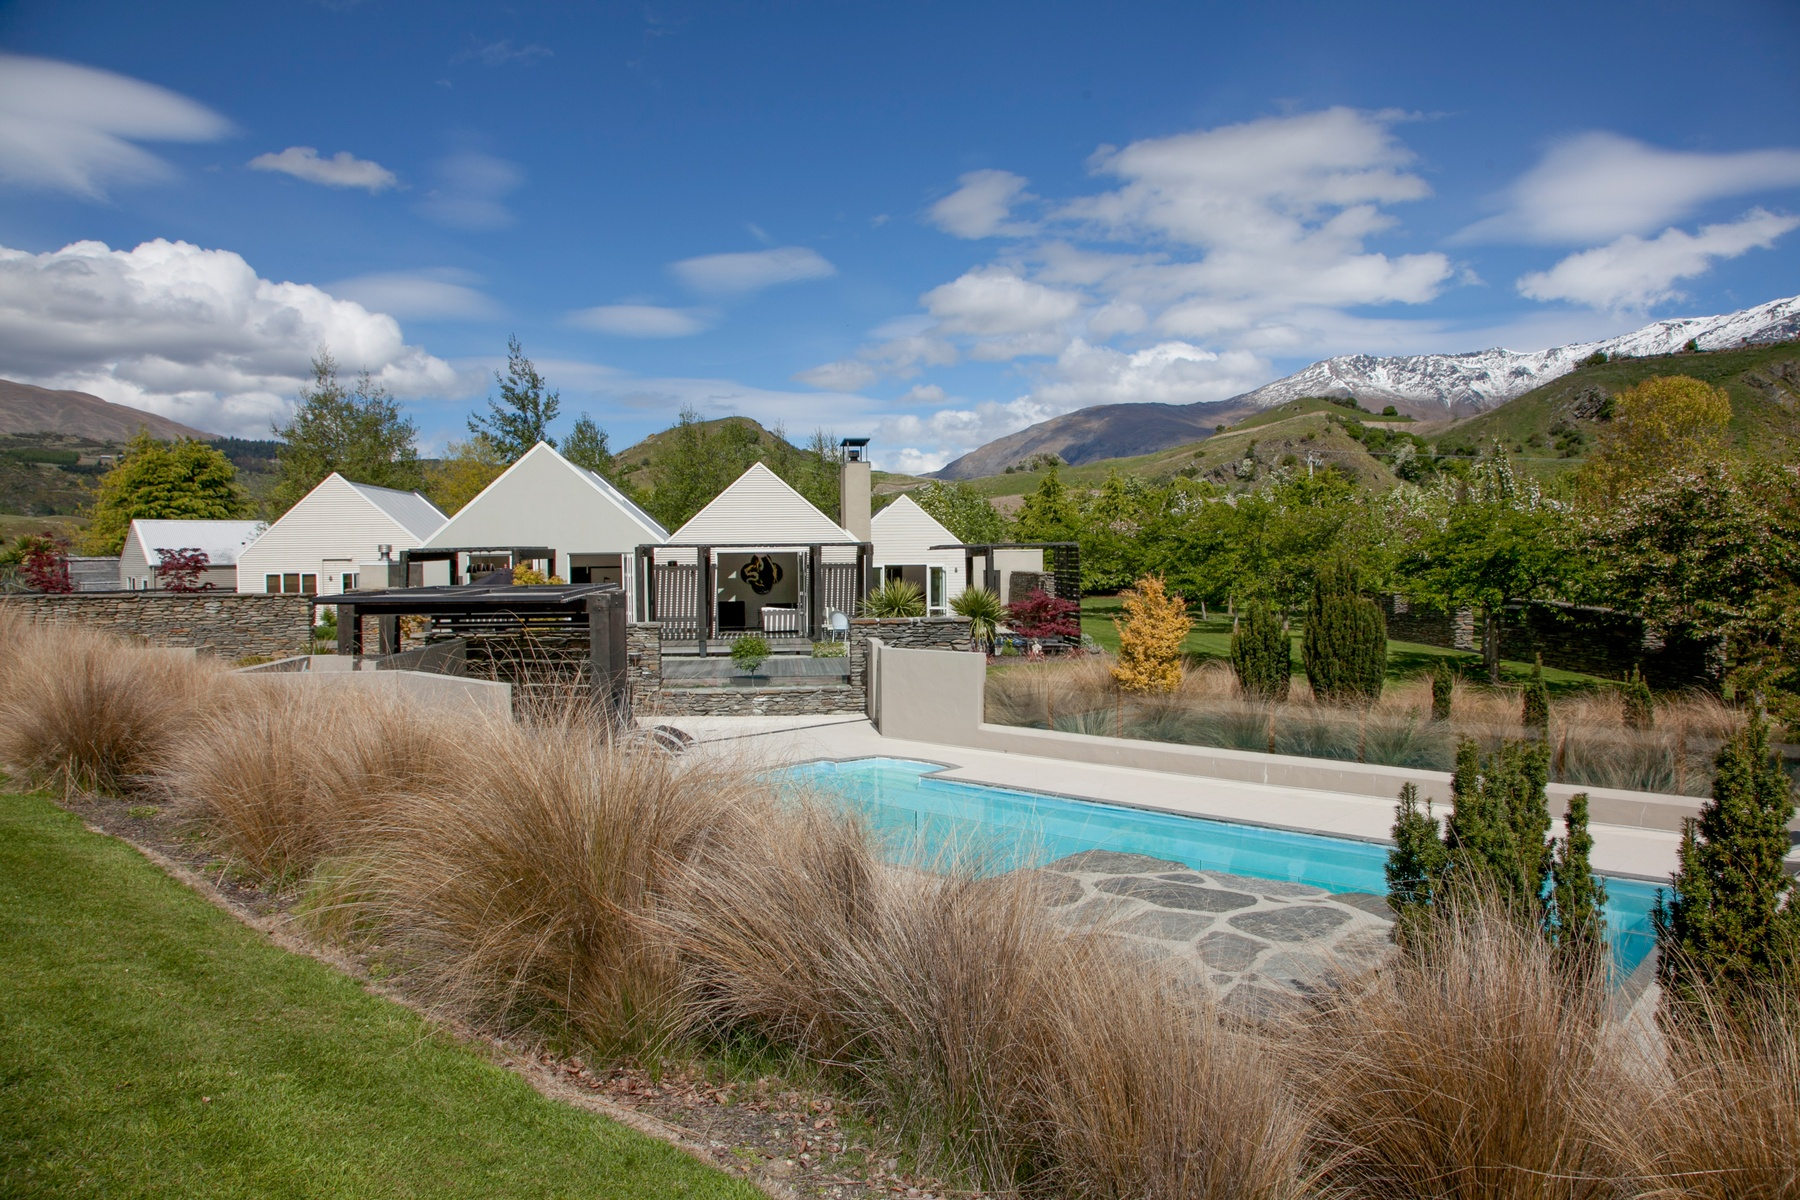 Single Family Home for Sale at 131 Hogans Gully Road, Arrowtown Queenstown, Southern Lakes, 9371 New Zealand